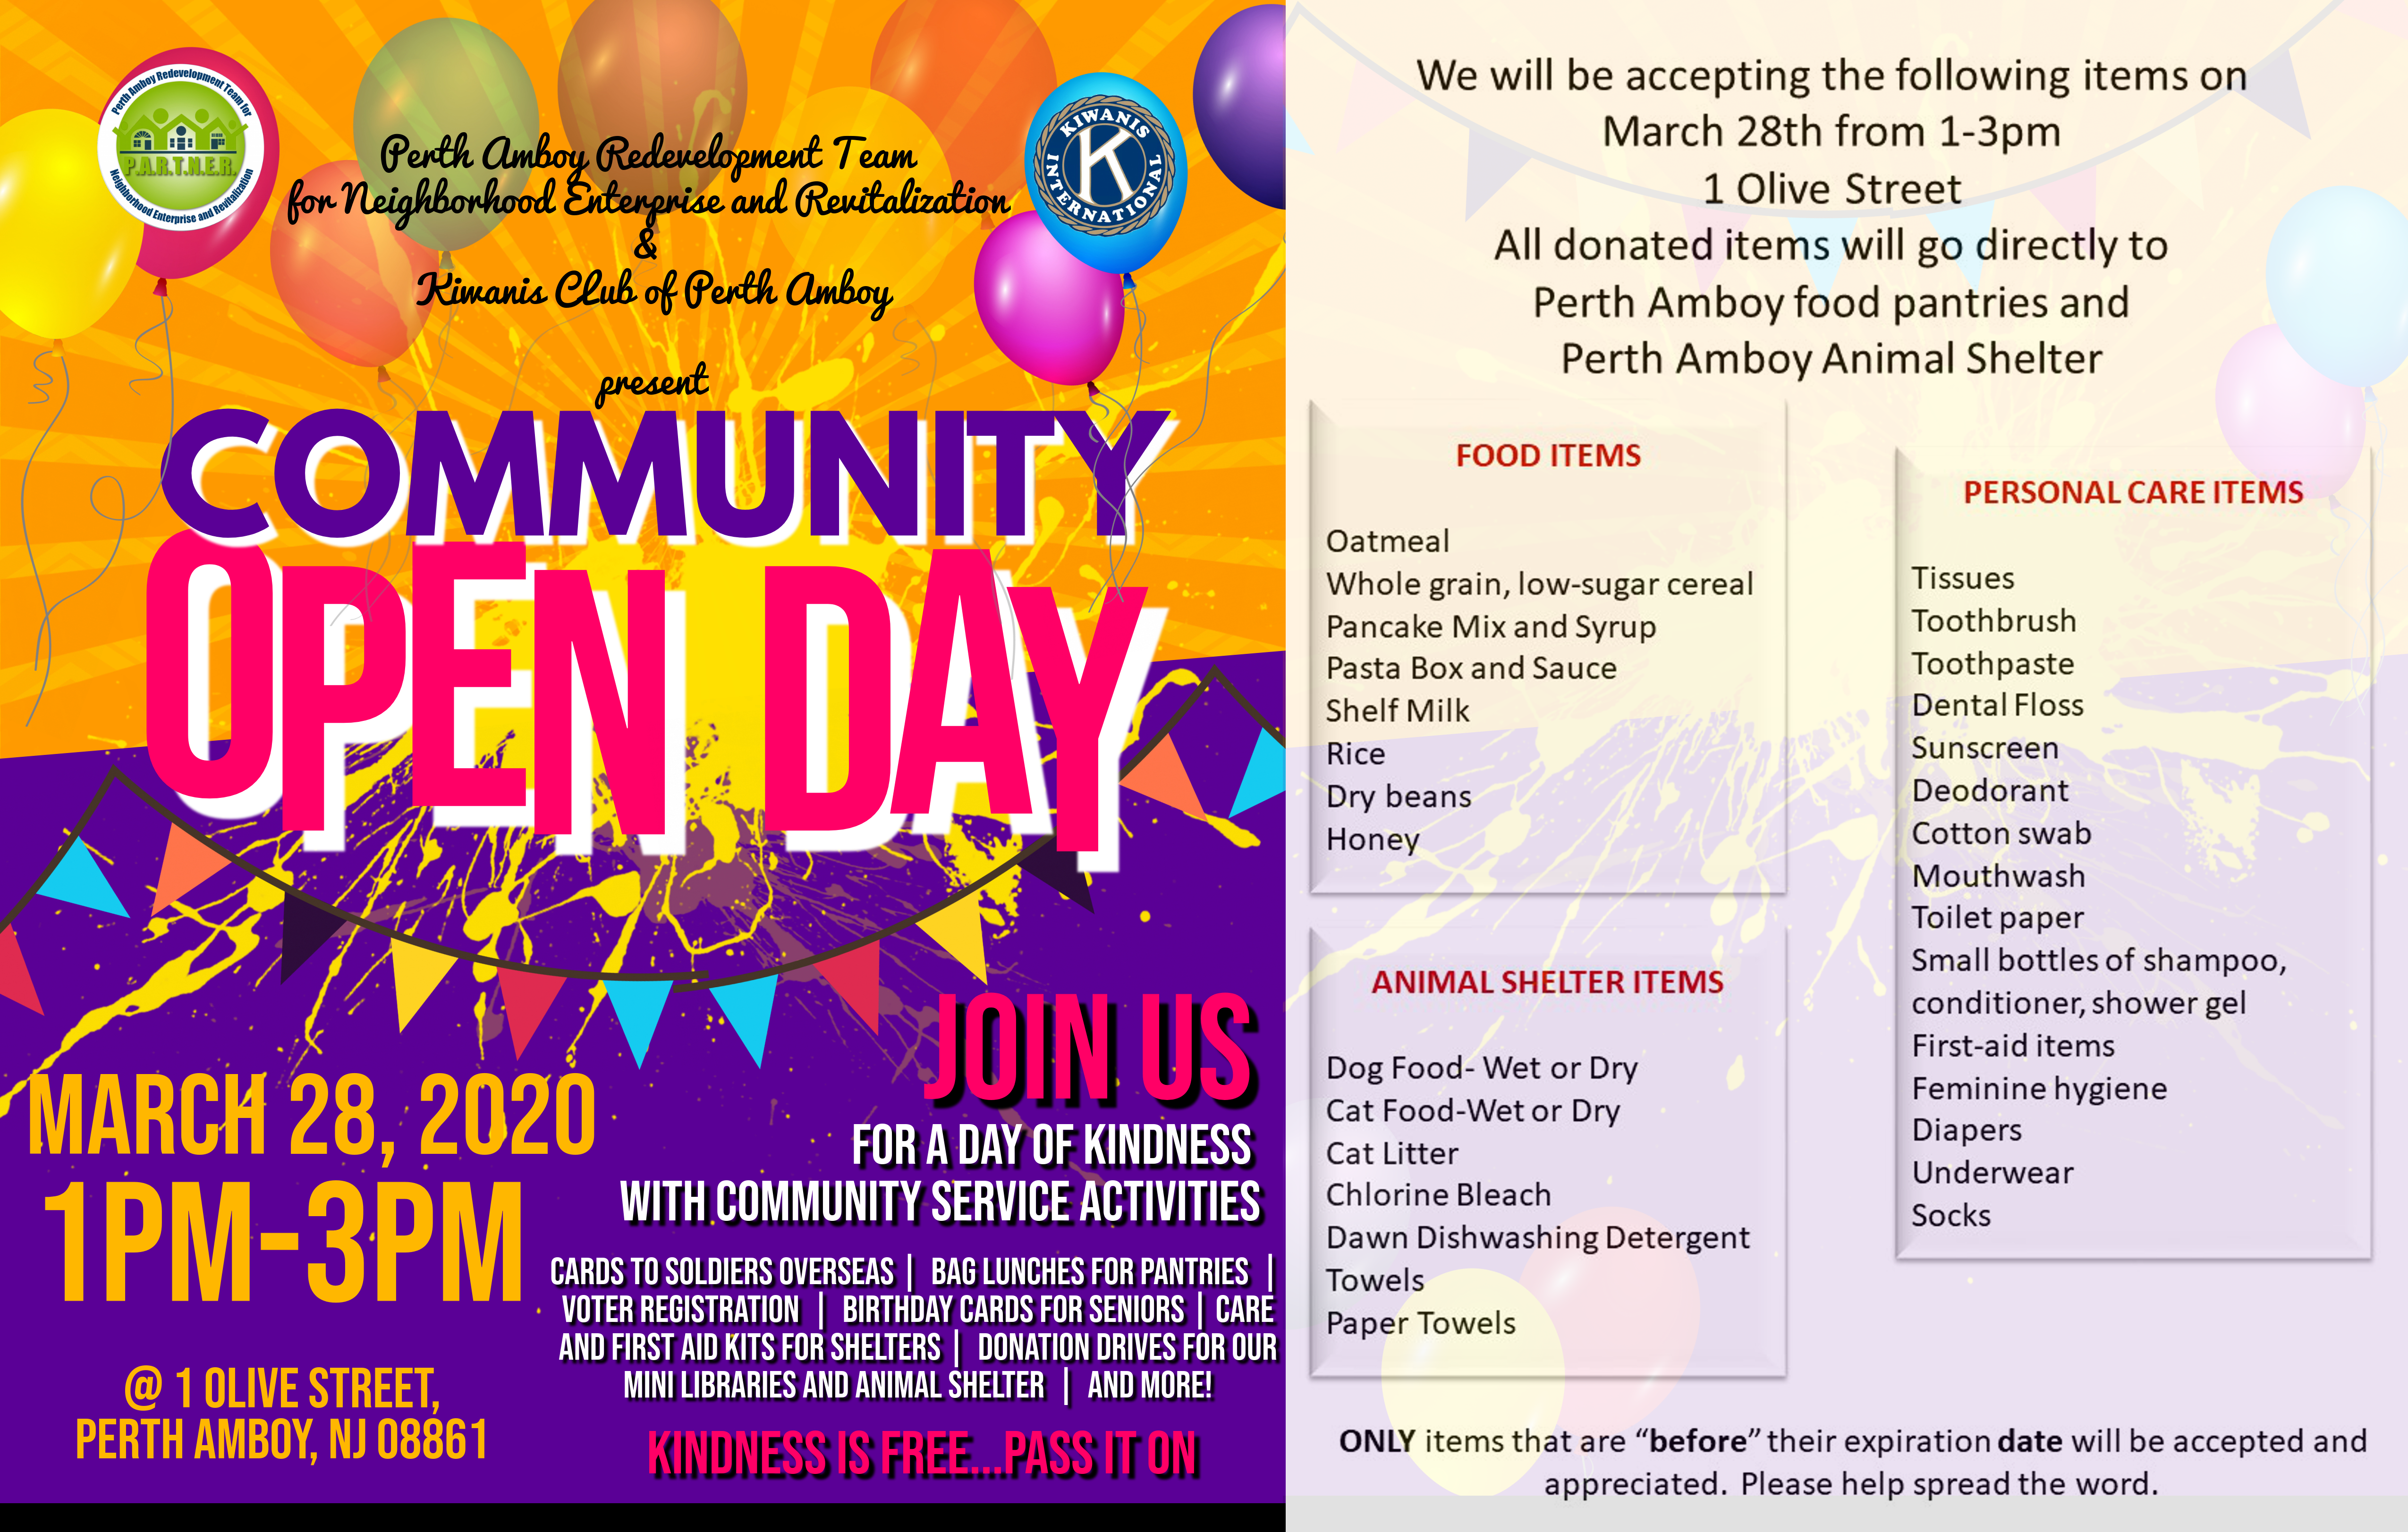 Community Open Day; A Day of Kindness with Community Service Activities